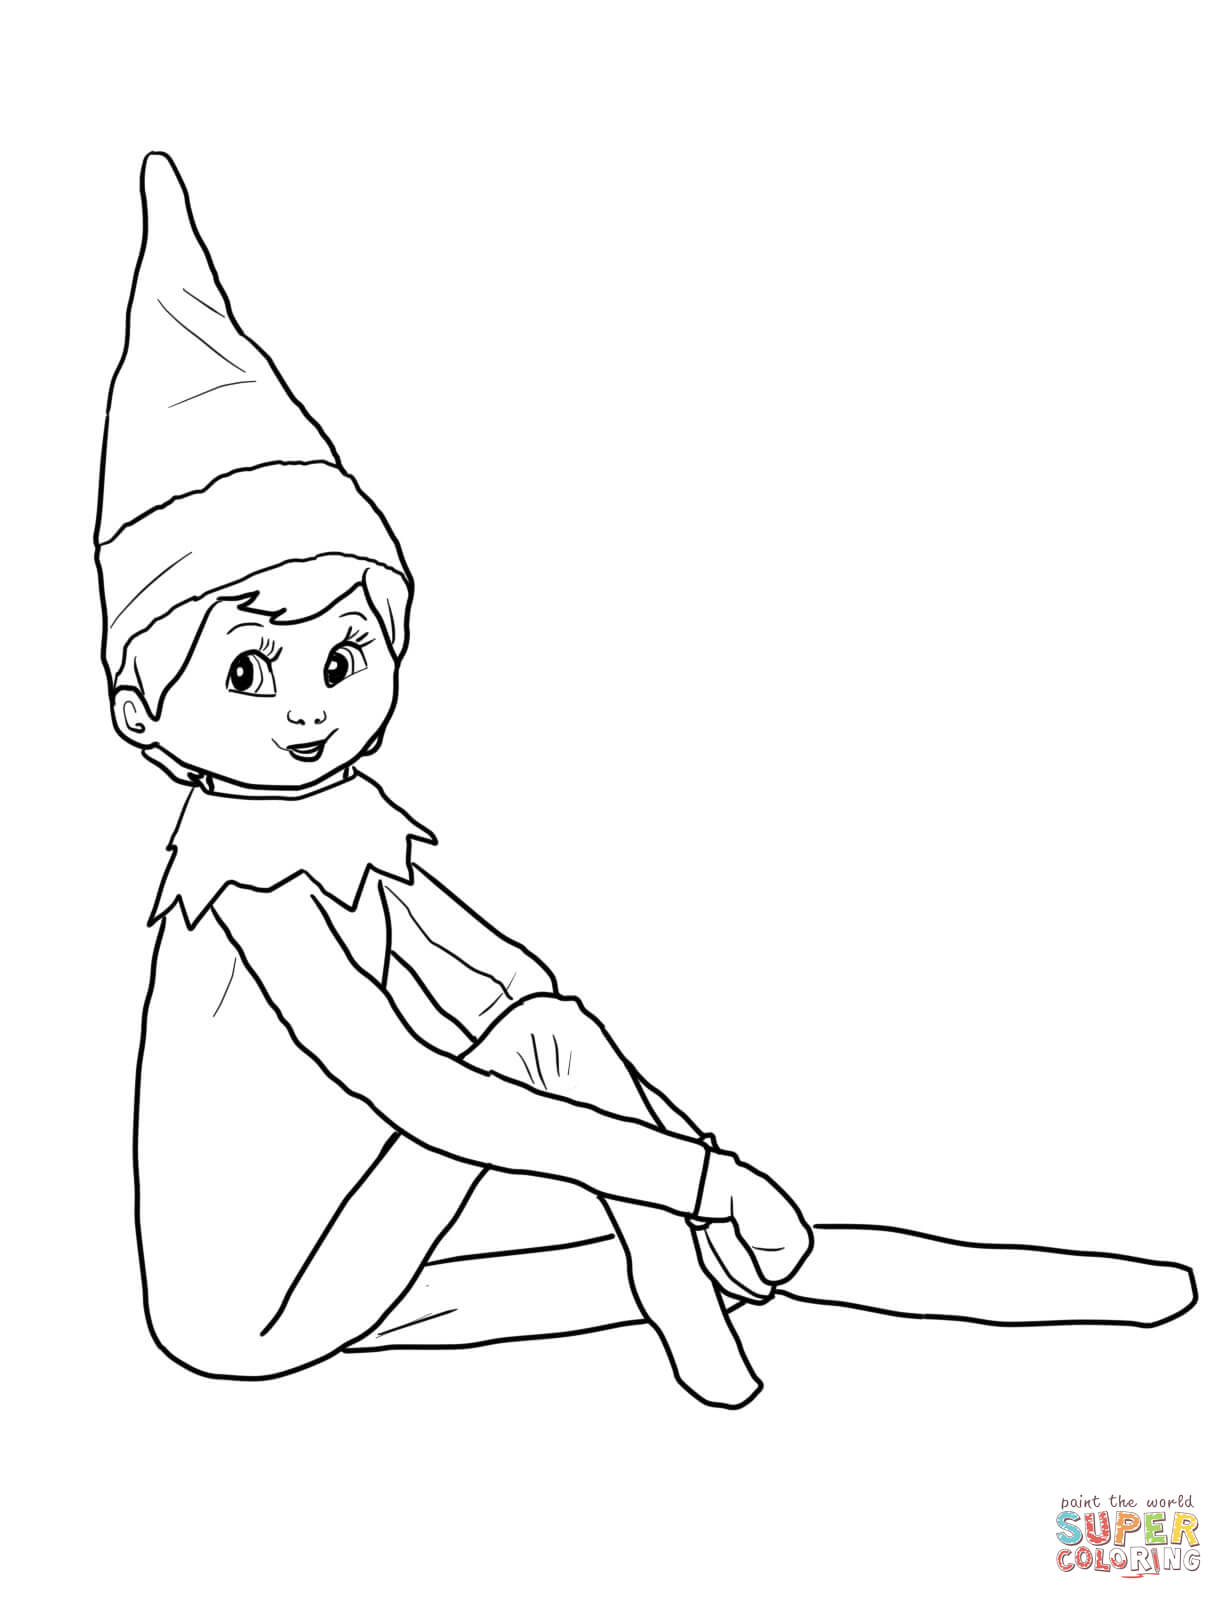 Elf On The Shelf Black And White Clipart.